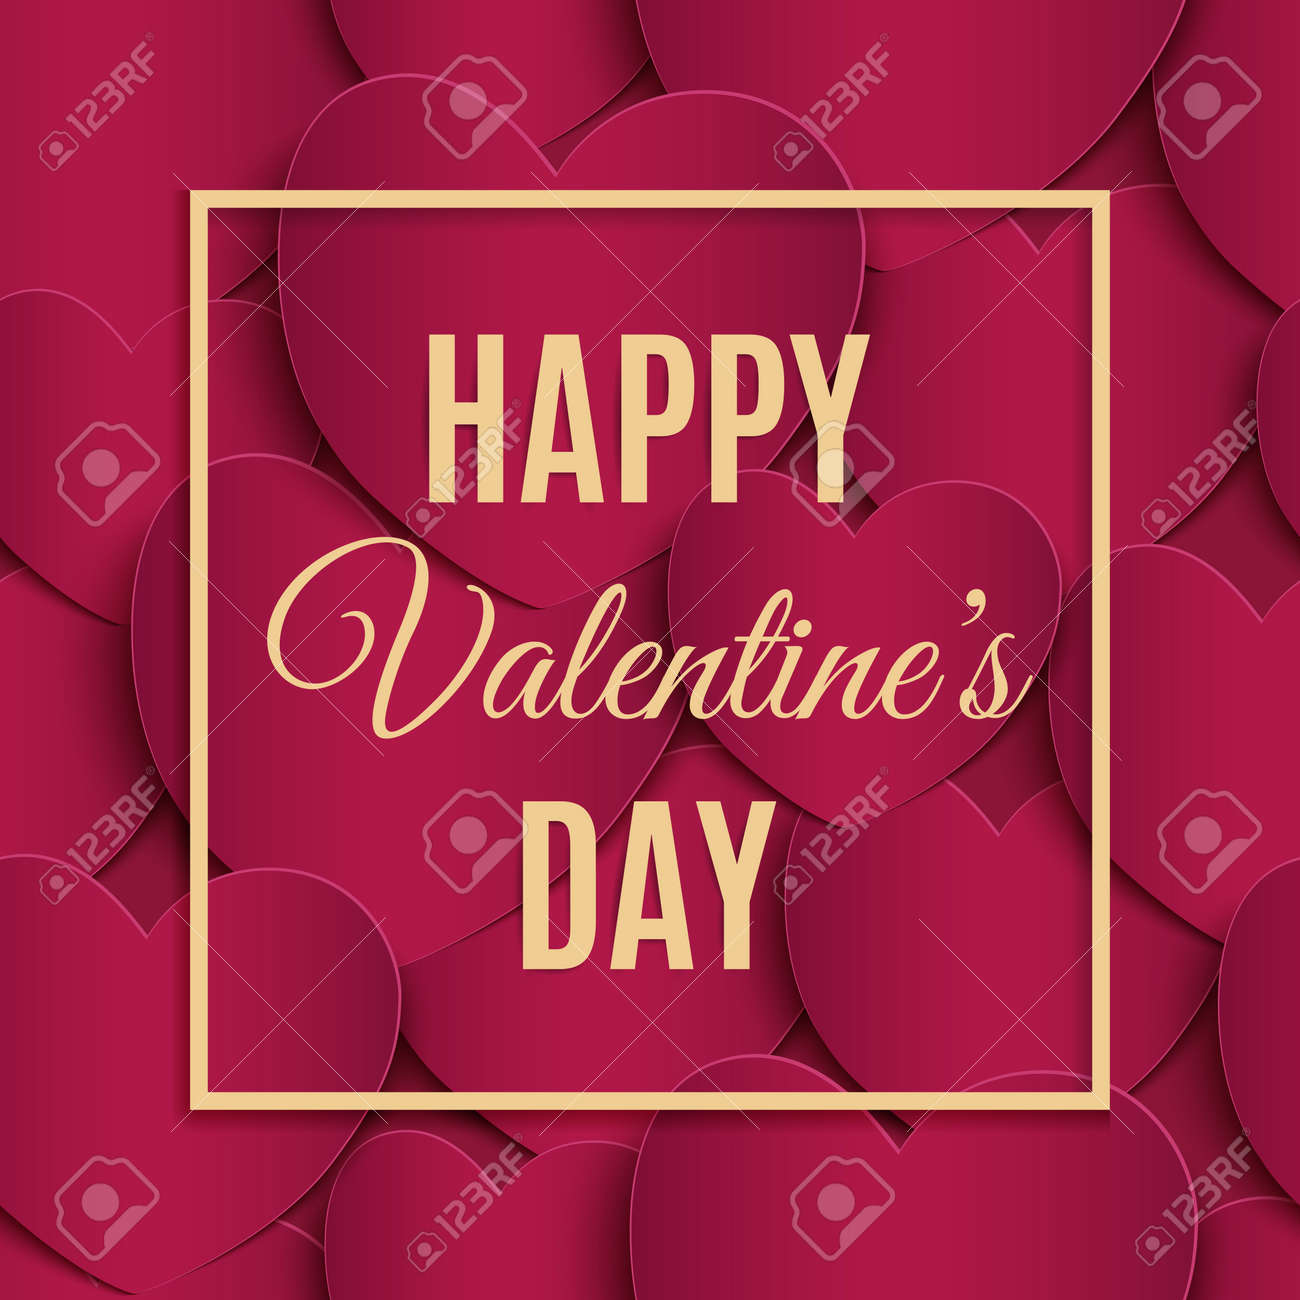 Happy Valentines Day Greeting Card Template. Royalty Free Cliparts ...